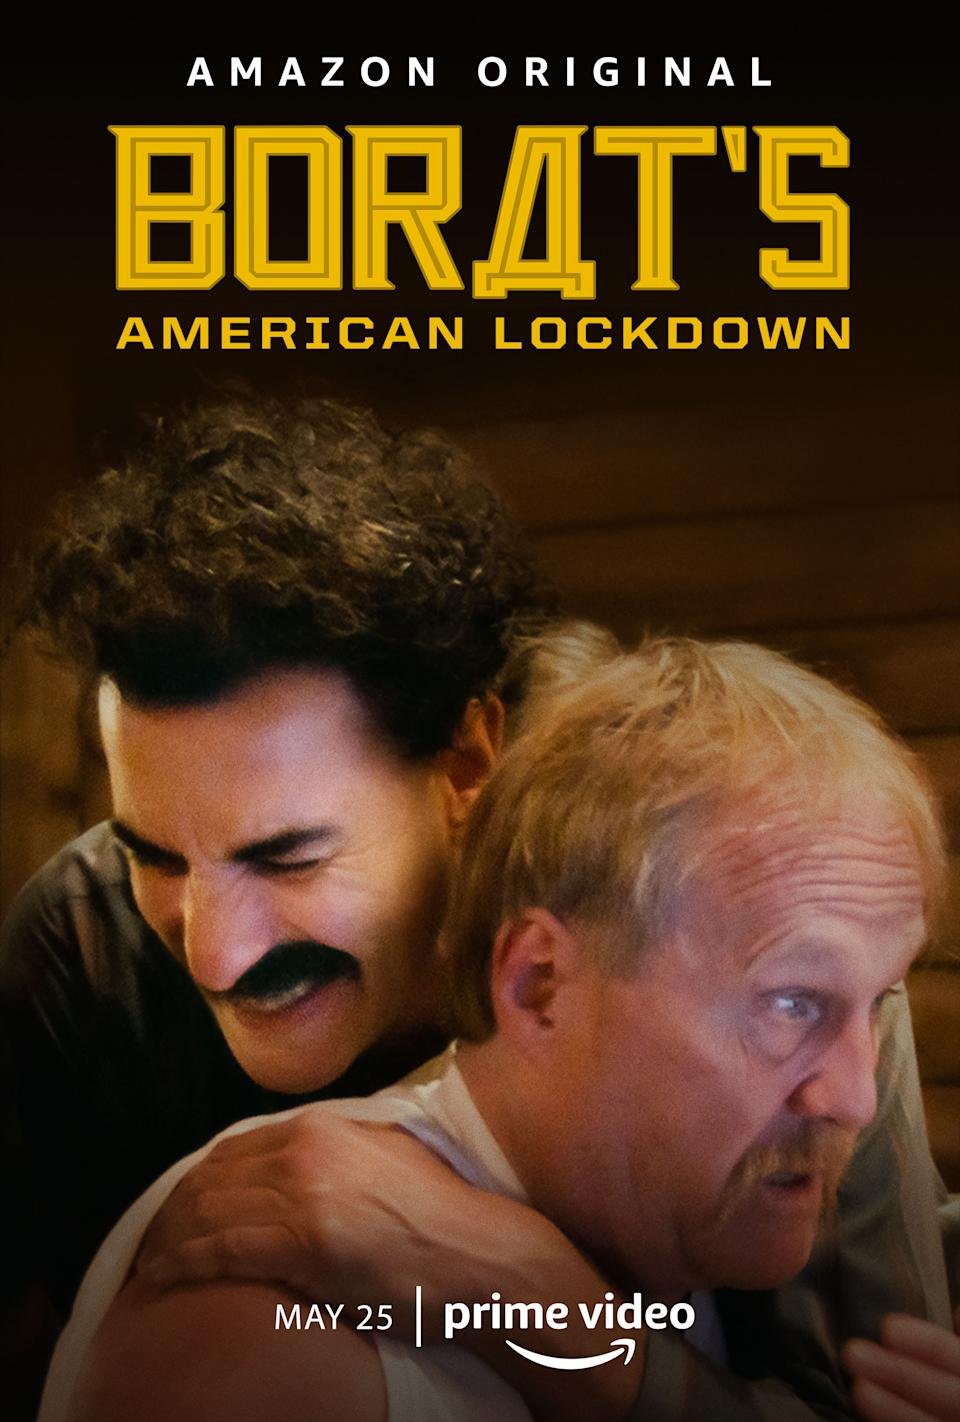 Borat's American Lockdown - See the 40 minute reality show of Borat Sagdiyev (Sacha Baron Cohen) as he spends five days at the peak of the Covid-19 pandemic with two conspiracy theorists. (Amazon)